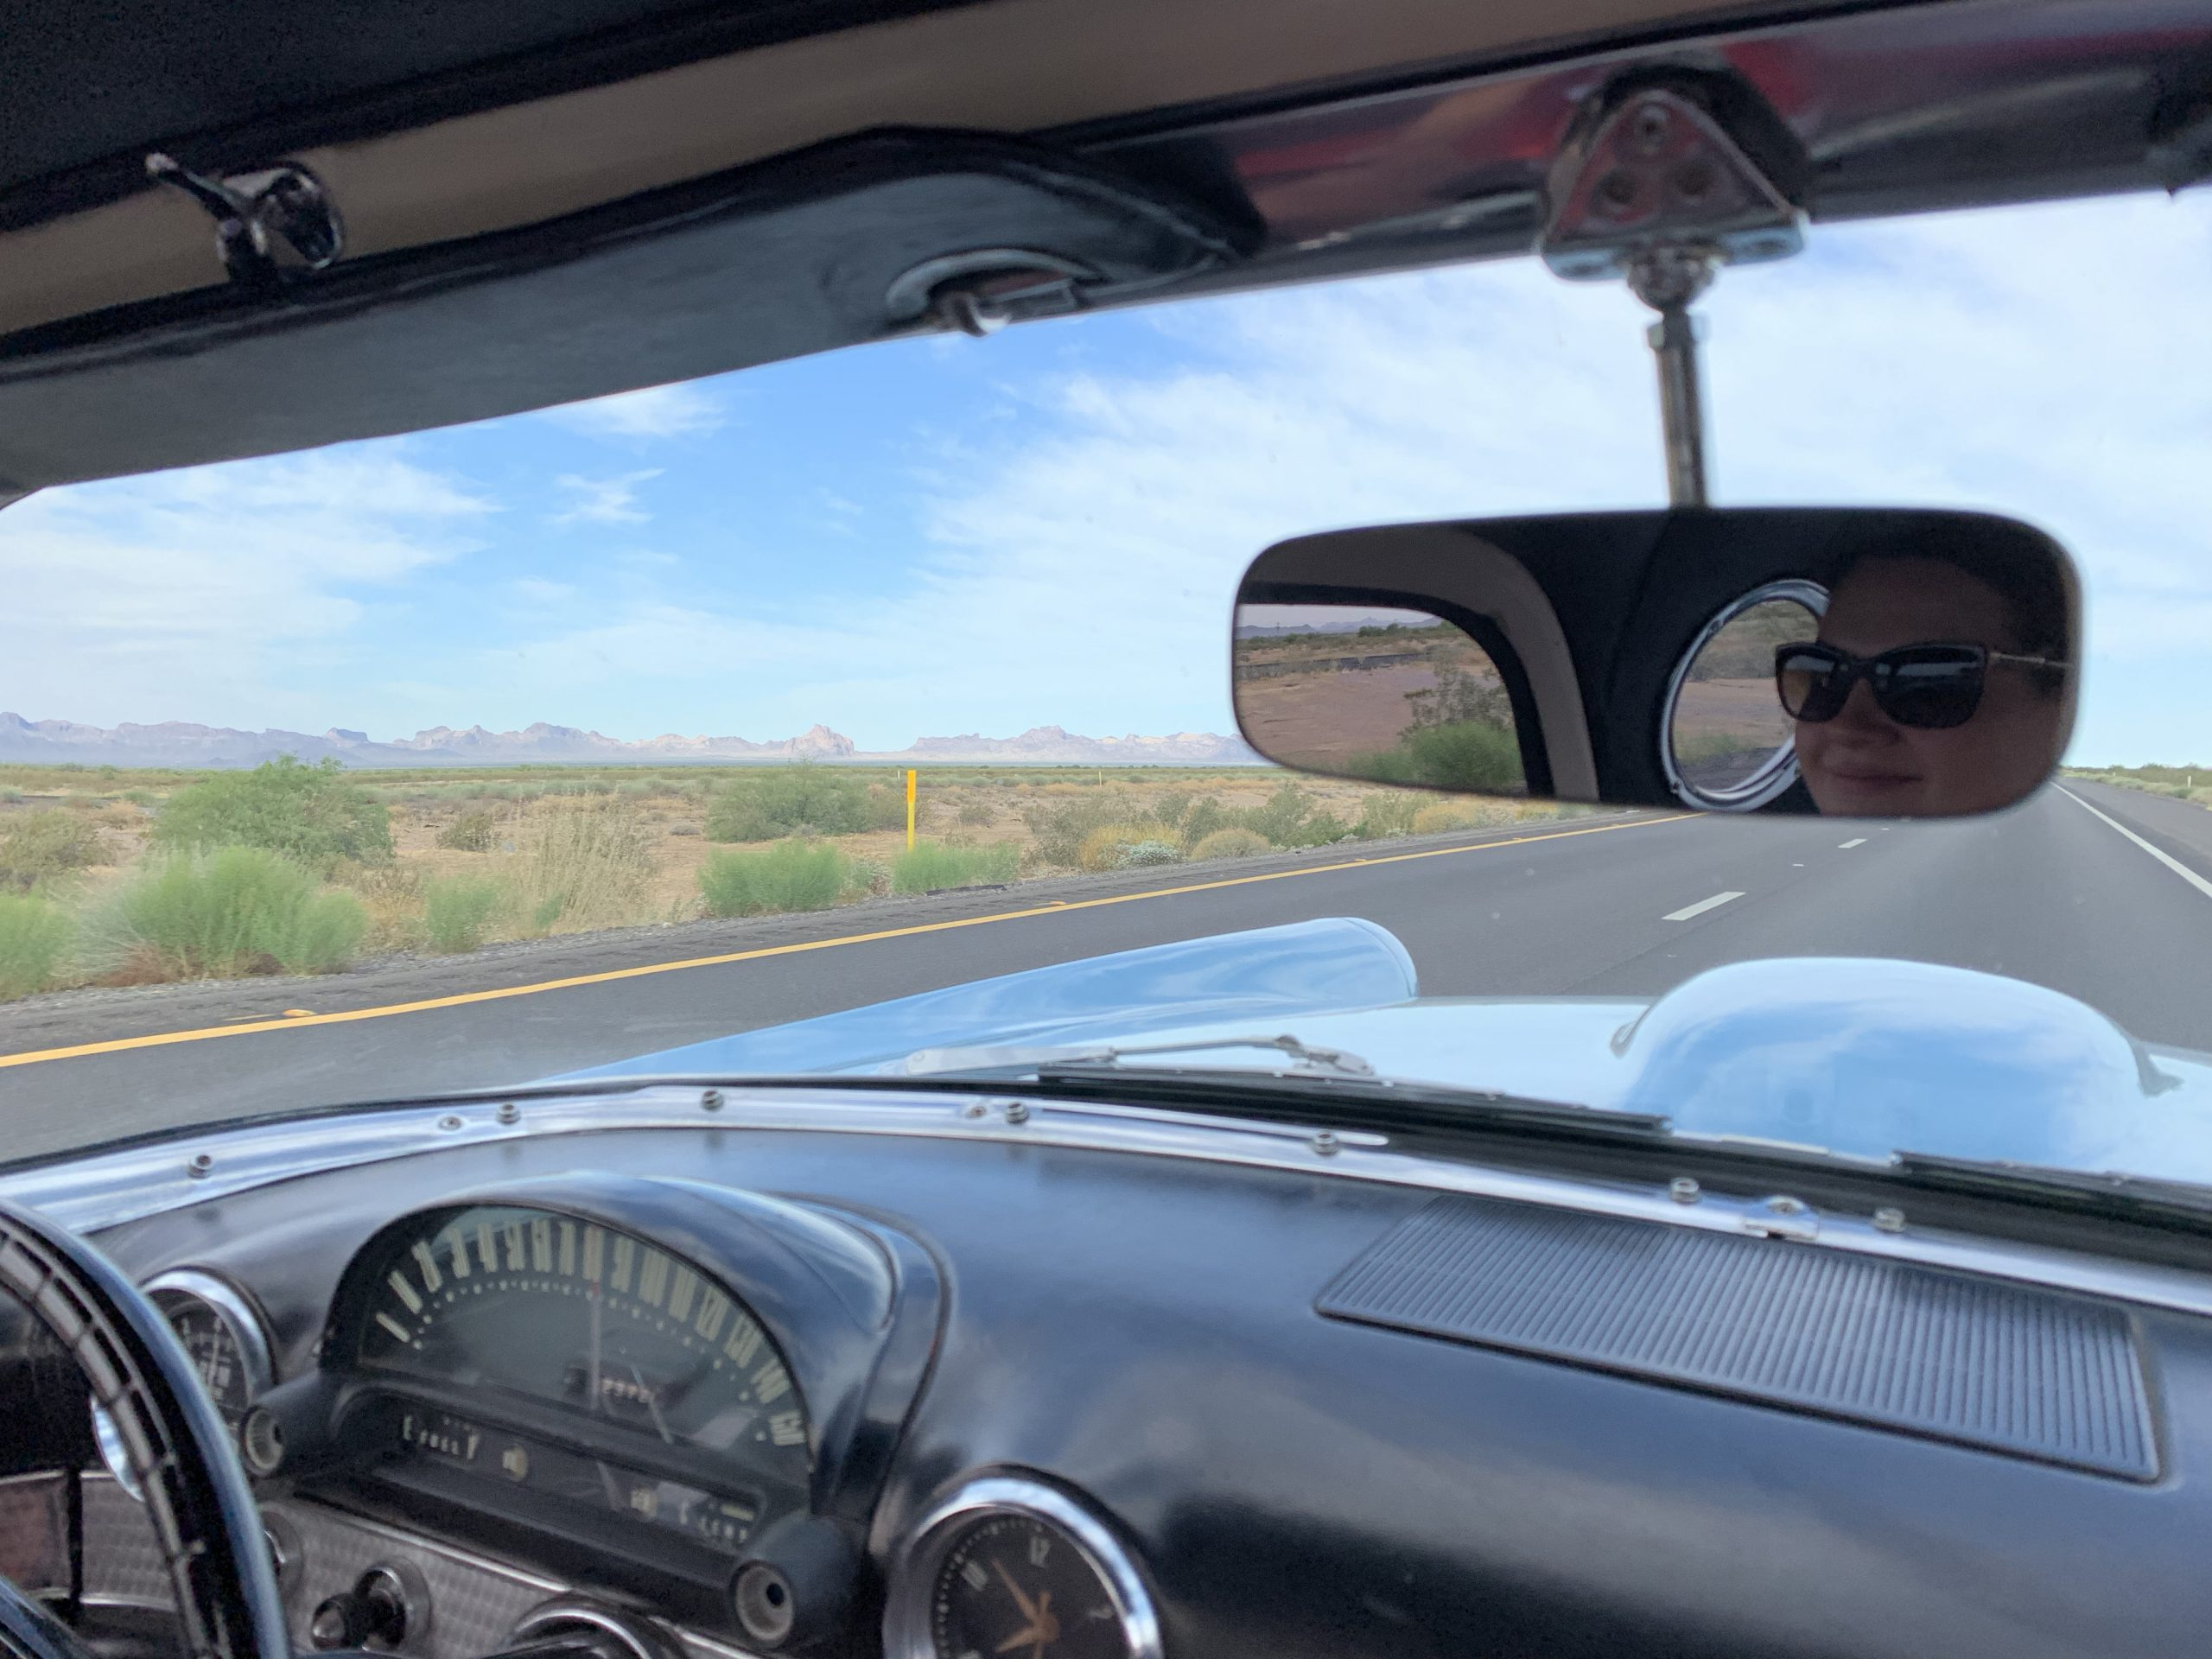 1956 Ford Thunderbird Owner In Mirror Driving